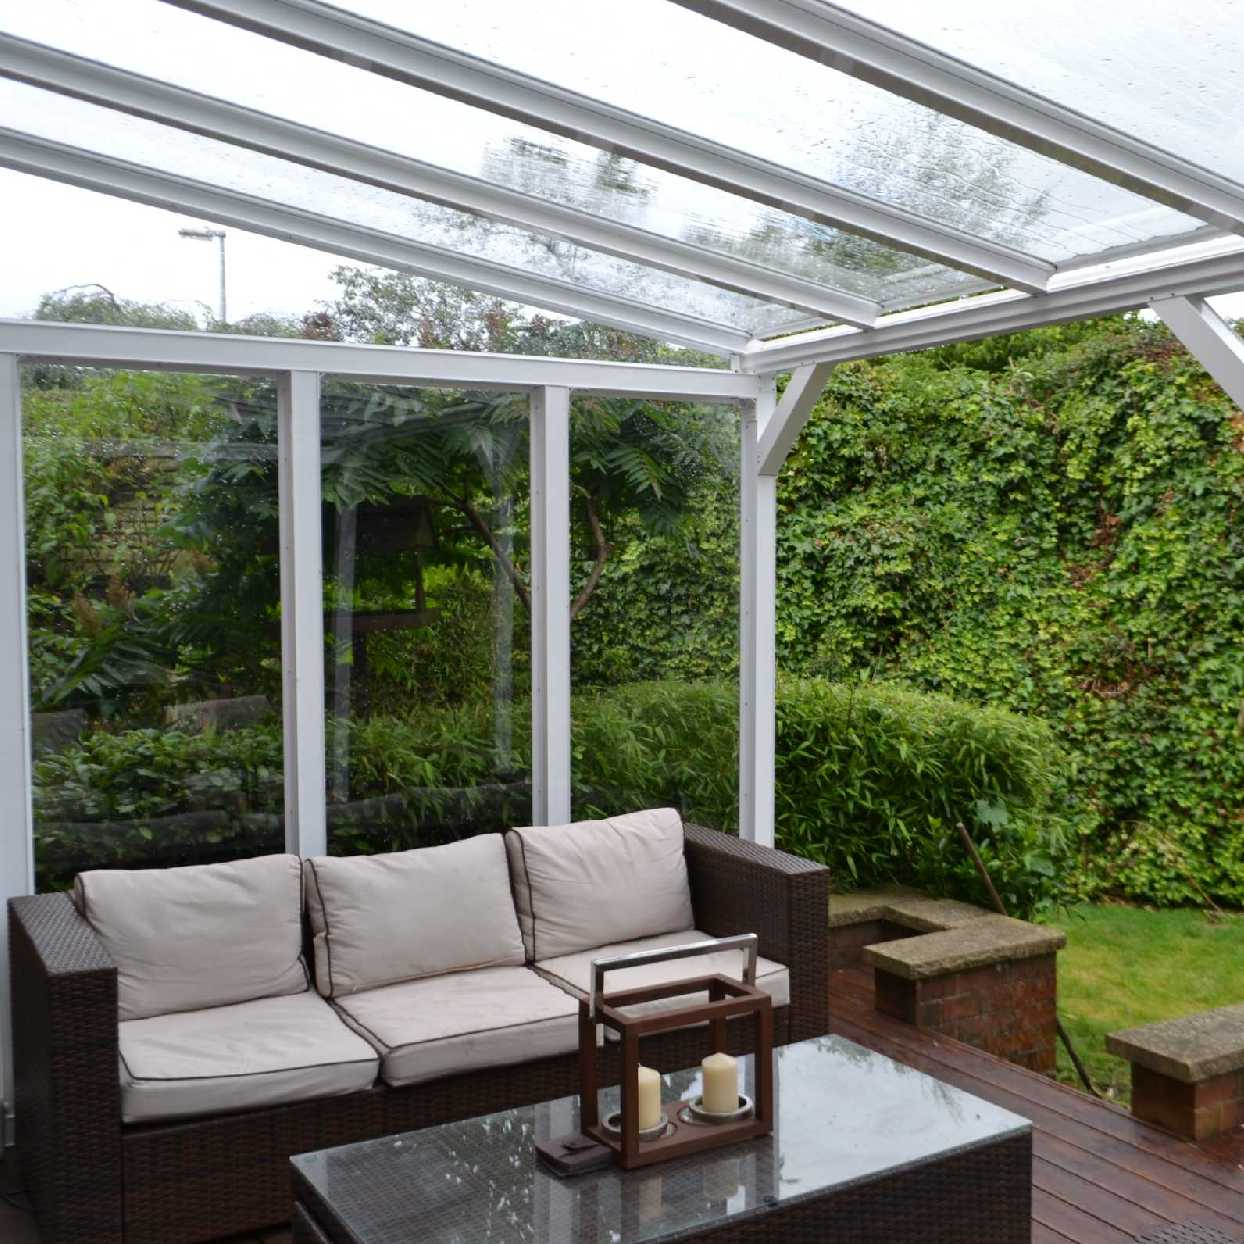 Omega Smart White Lean-To Canopy UNGLAZED for 6mm Glazing - 2.1m (W) x 2.5m (P), (2) Supporting Posts